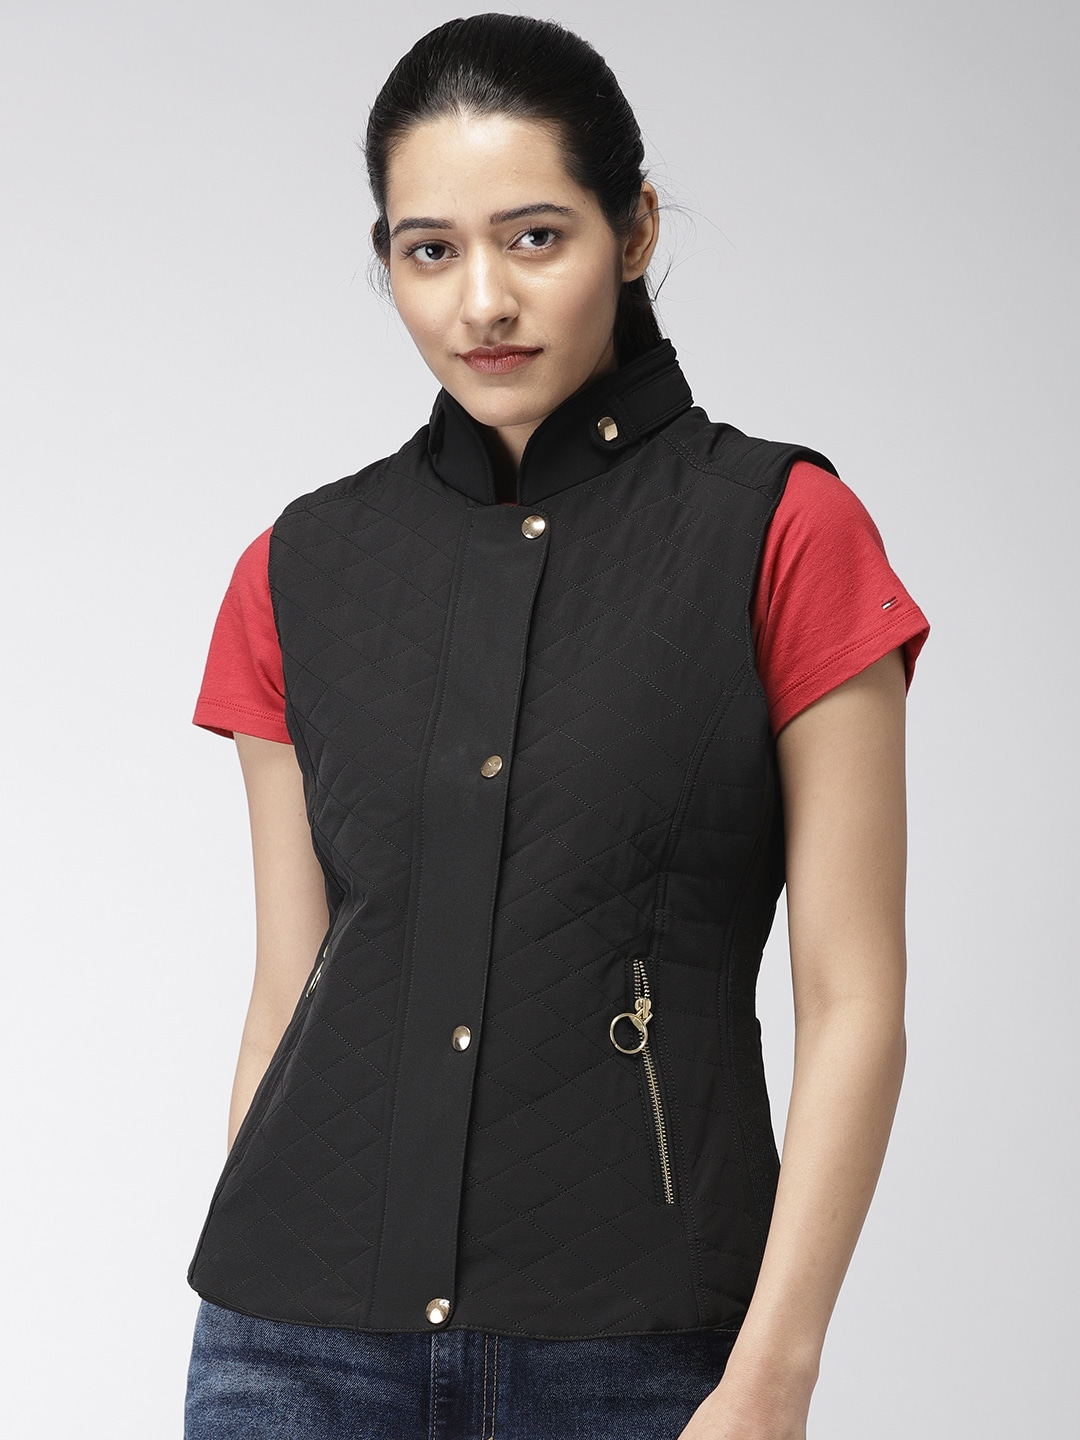 388cdfb18168b Fort Collins Sleeveless Jackets - Buy Fort Collins Sleeveless Jackets  online in India